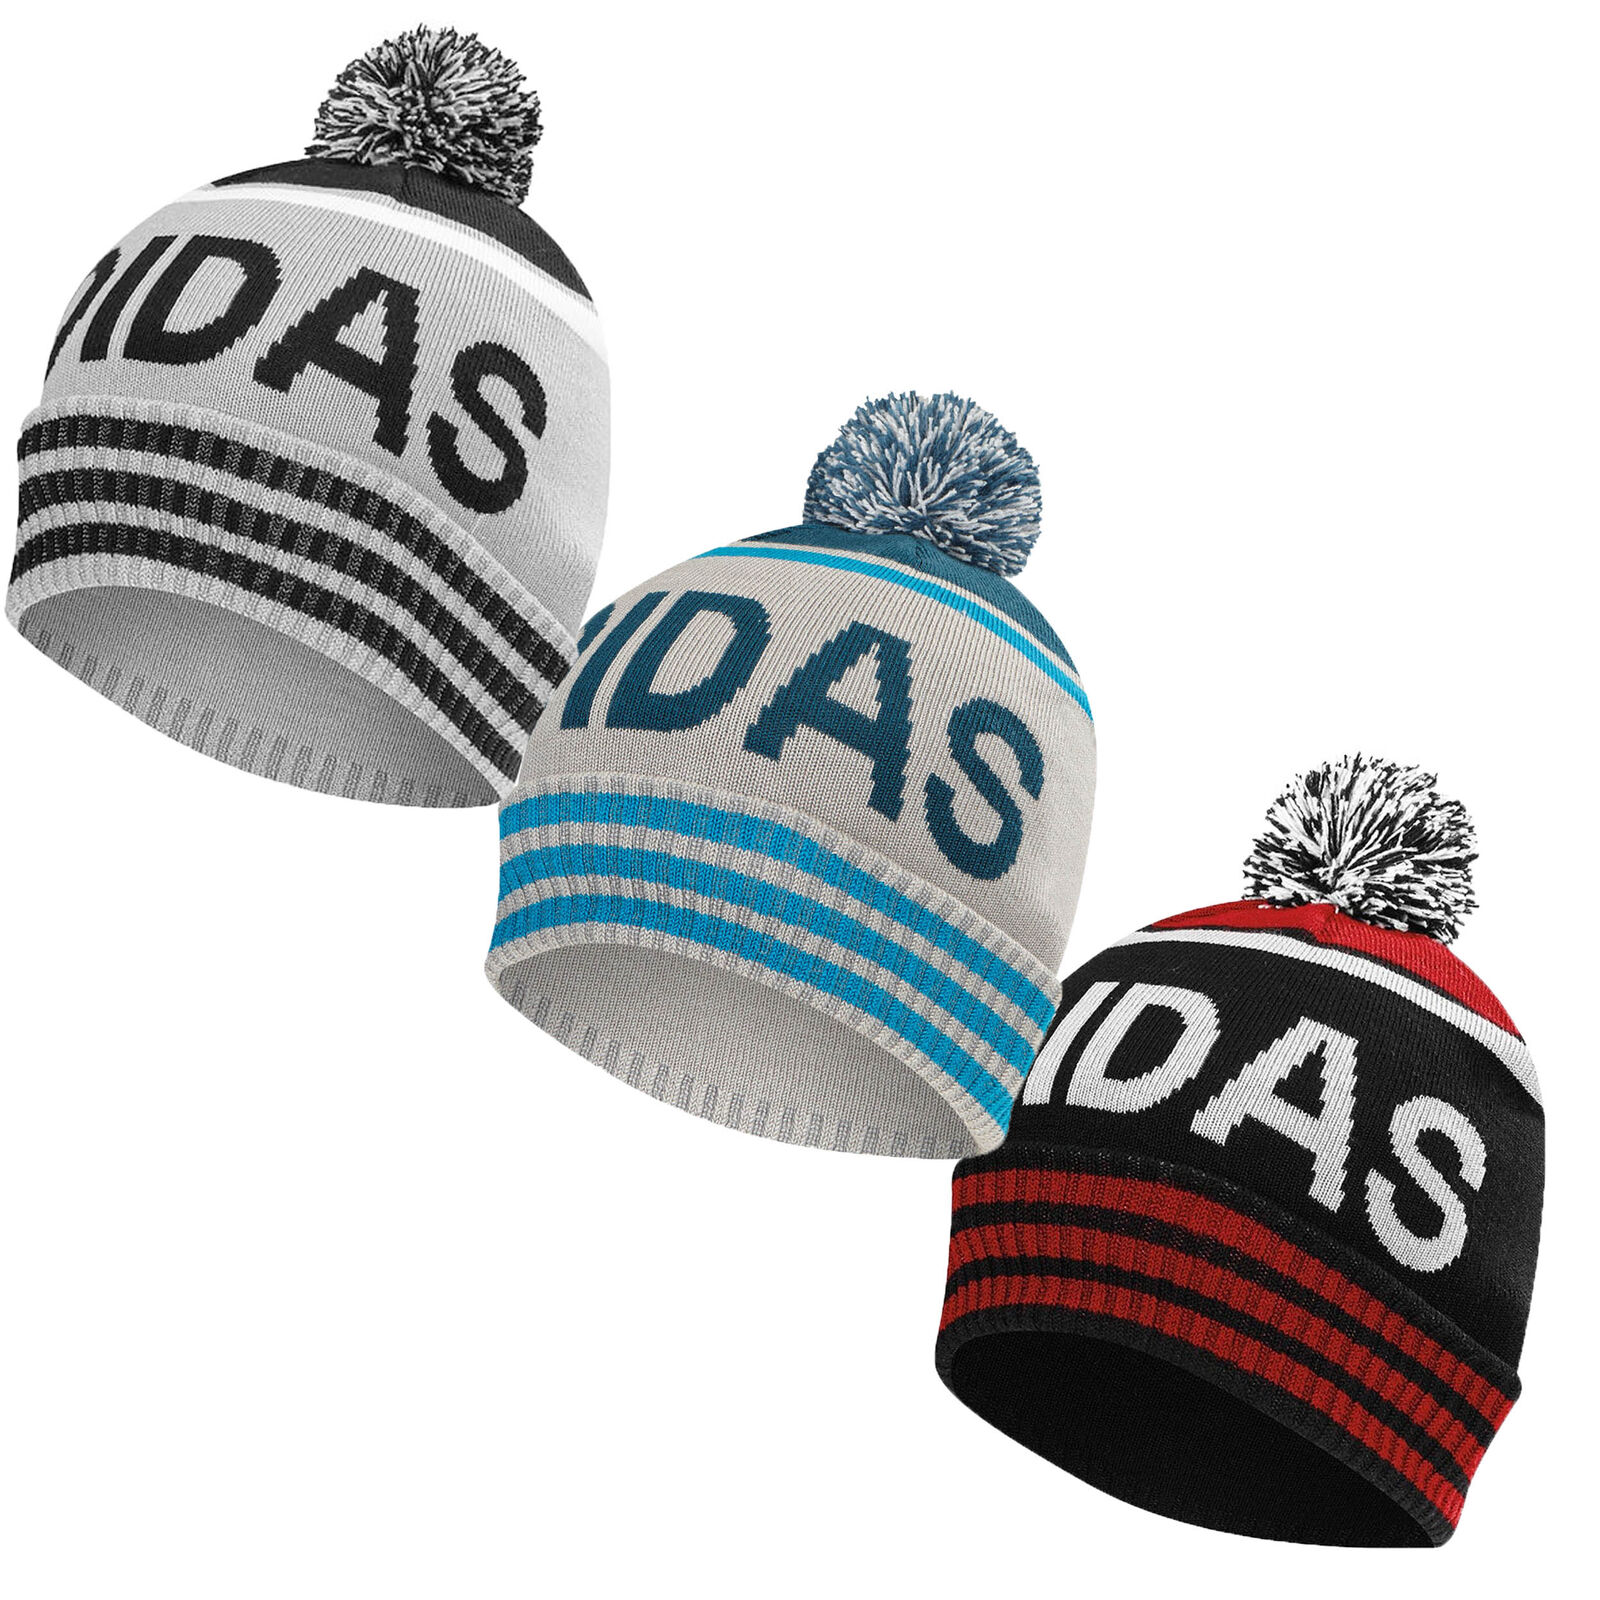 de3a9b888c8d4 Adidas Golf Men's Pom Beanie Winter Bobble Hat Cap - Pick Color! שמור מוצר.  מוצר מבוקש. gallery image